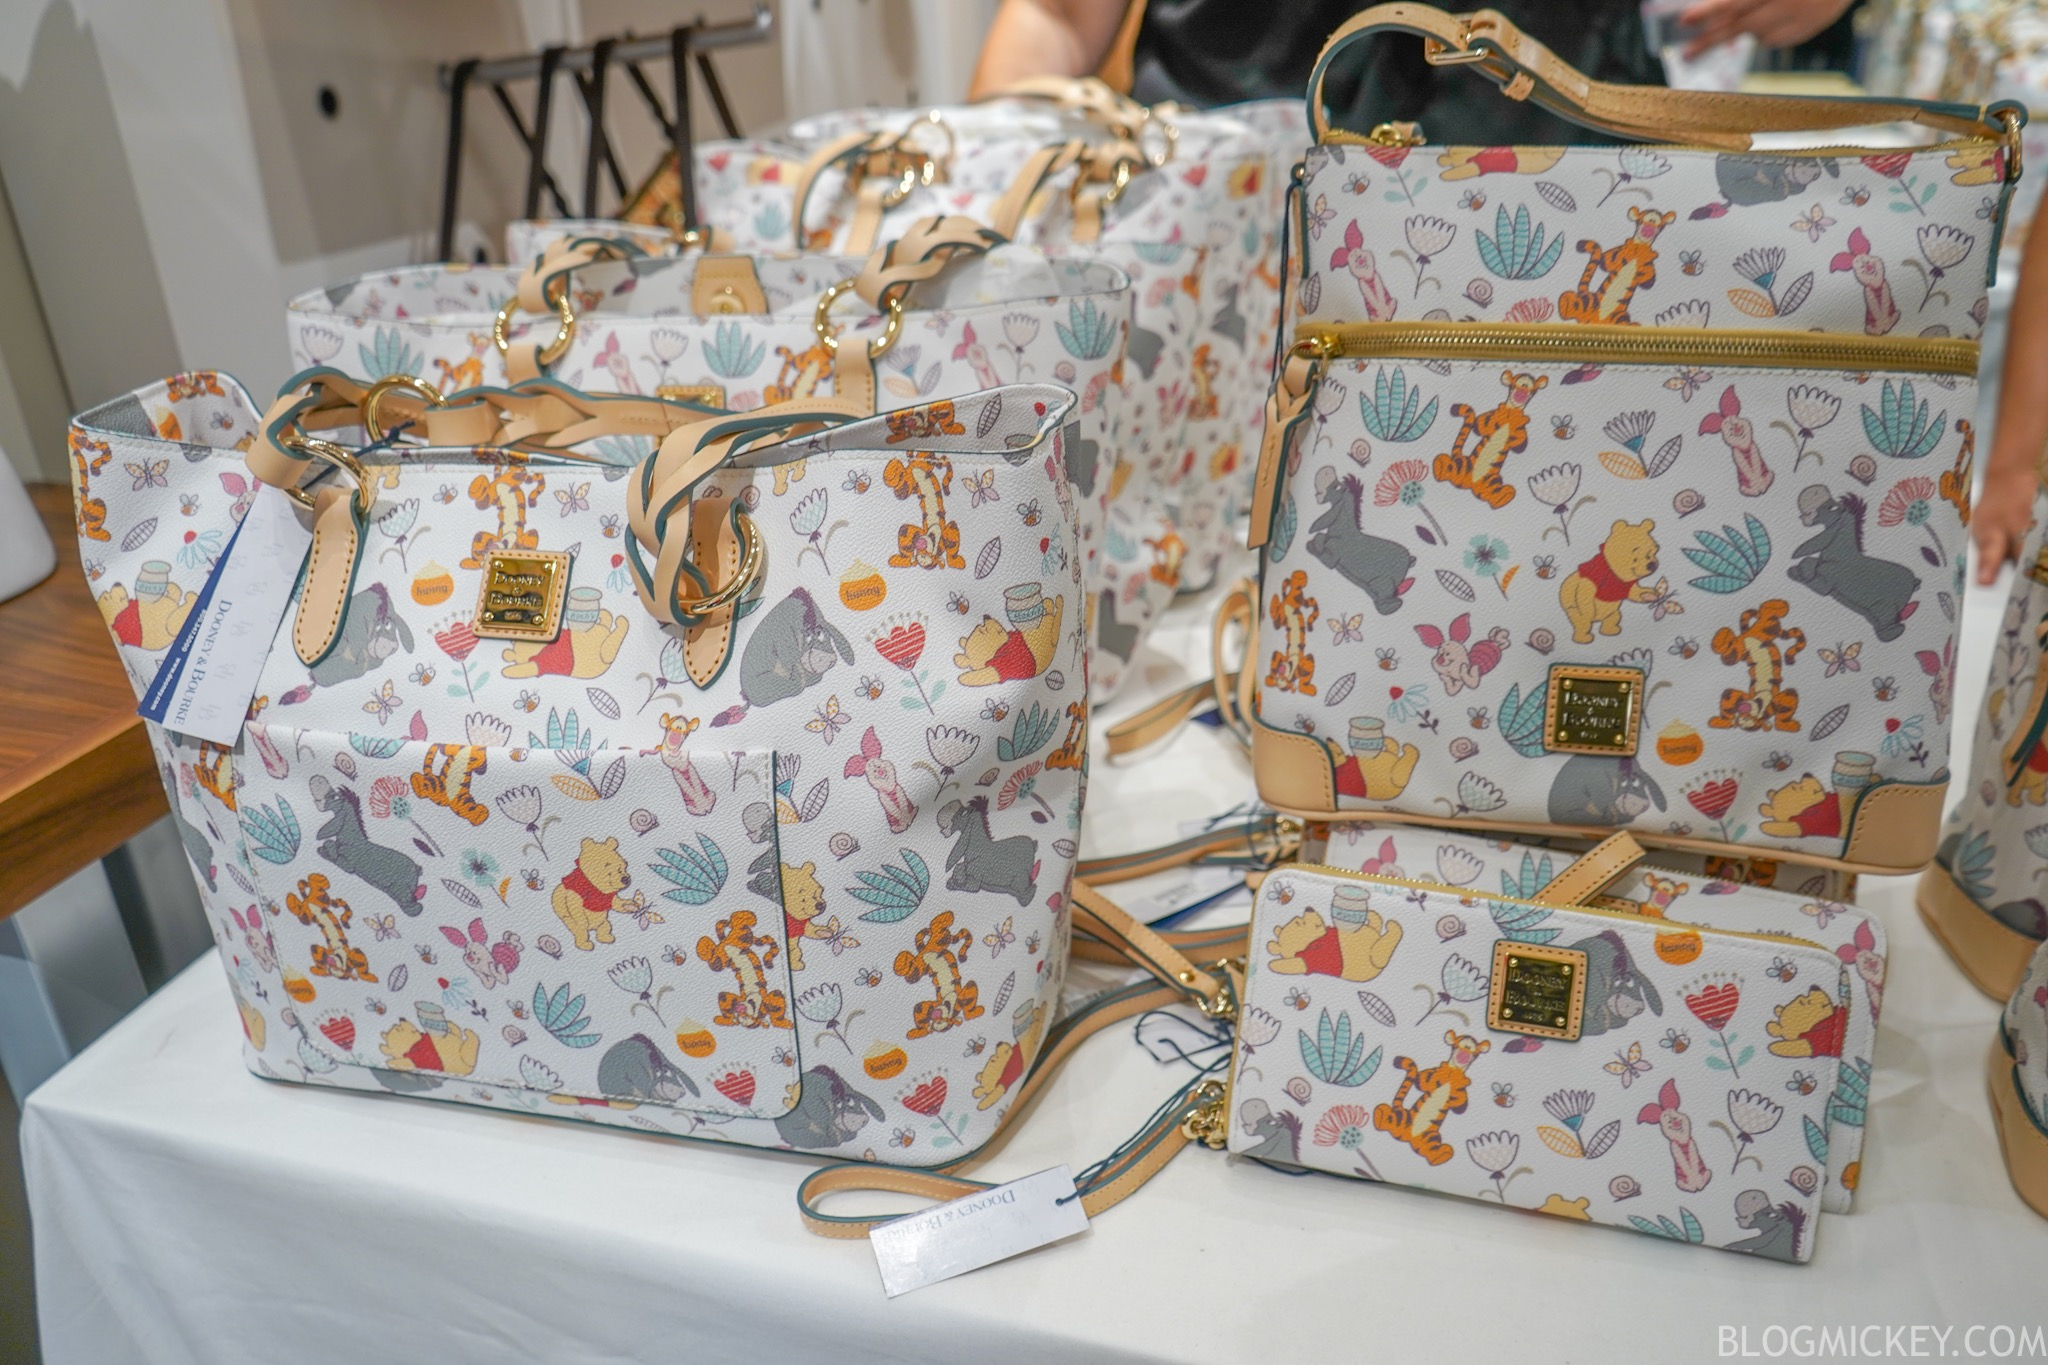 New Winnie The Pooh Dooney And Bourke Handbags Arrive At Walt Disney World